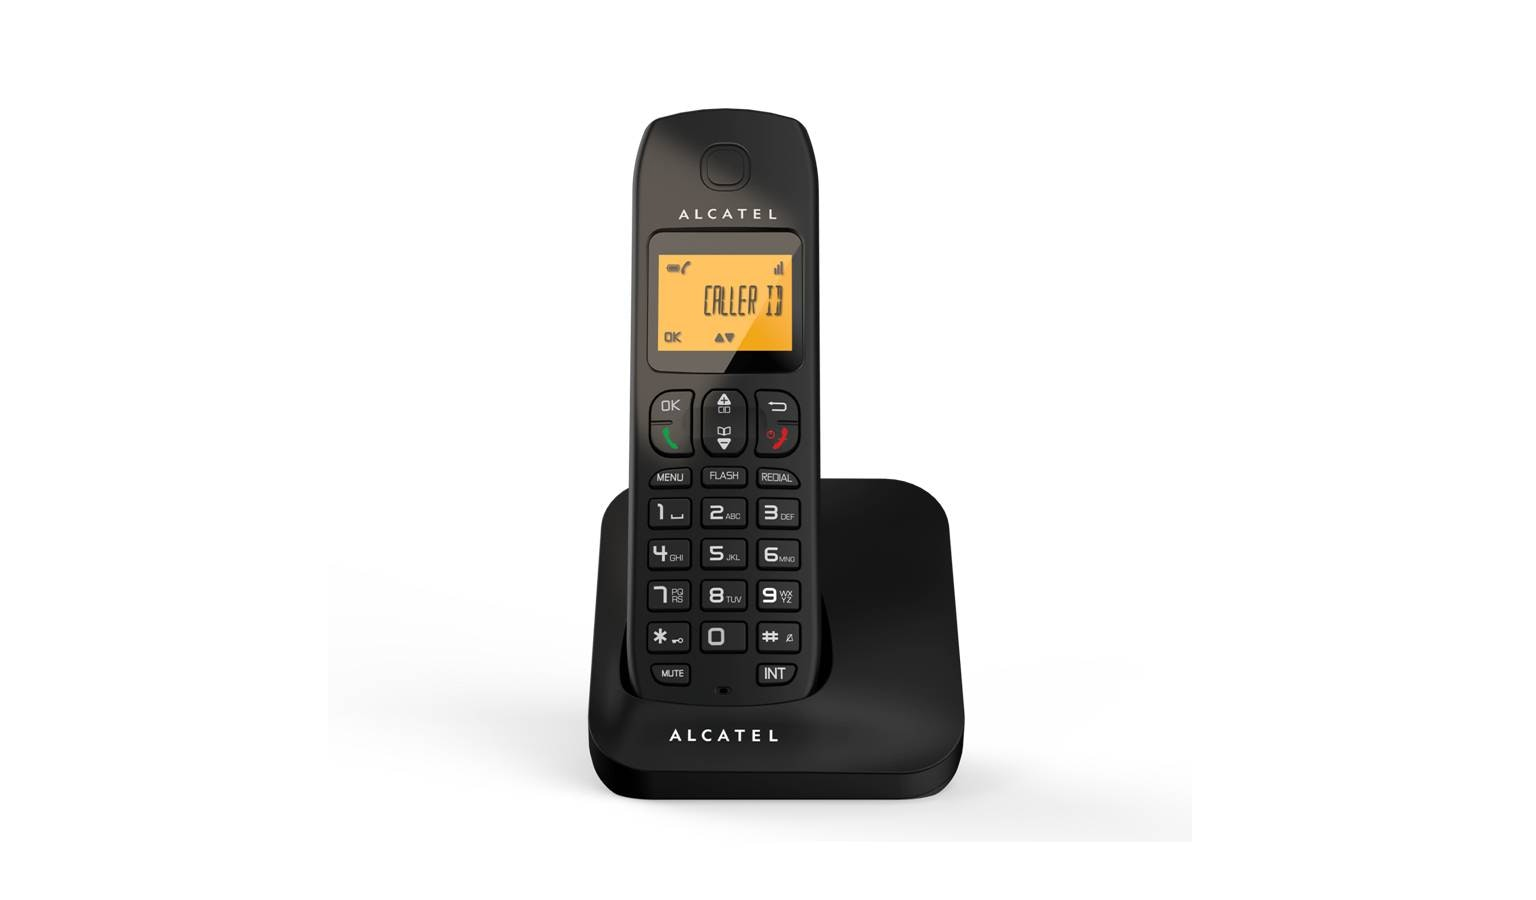 Alcatel E130 Solo DECT Phone - Black - 01